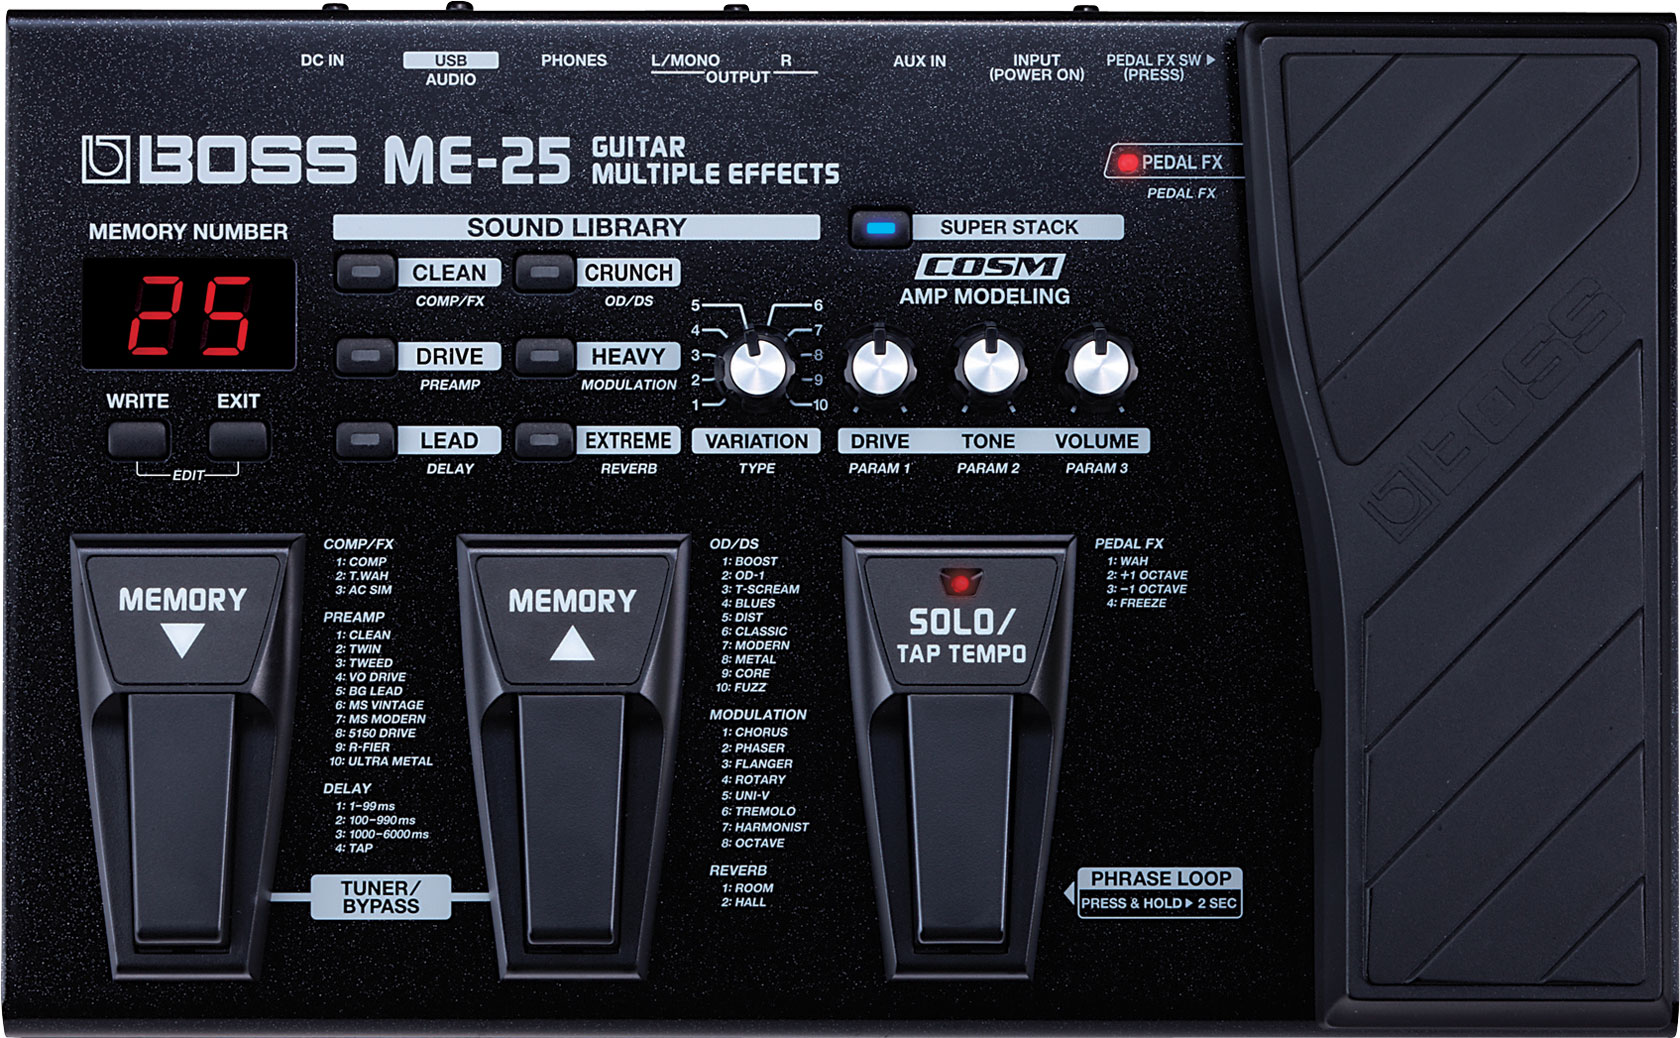 Boss me 25 guitar patches download